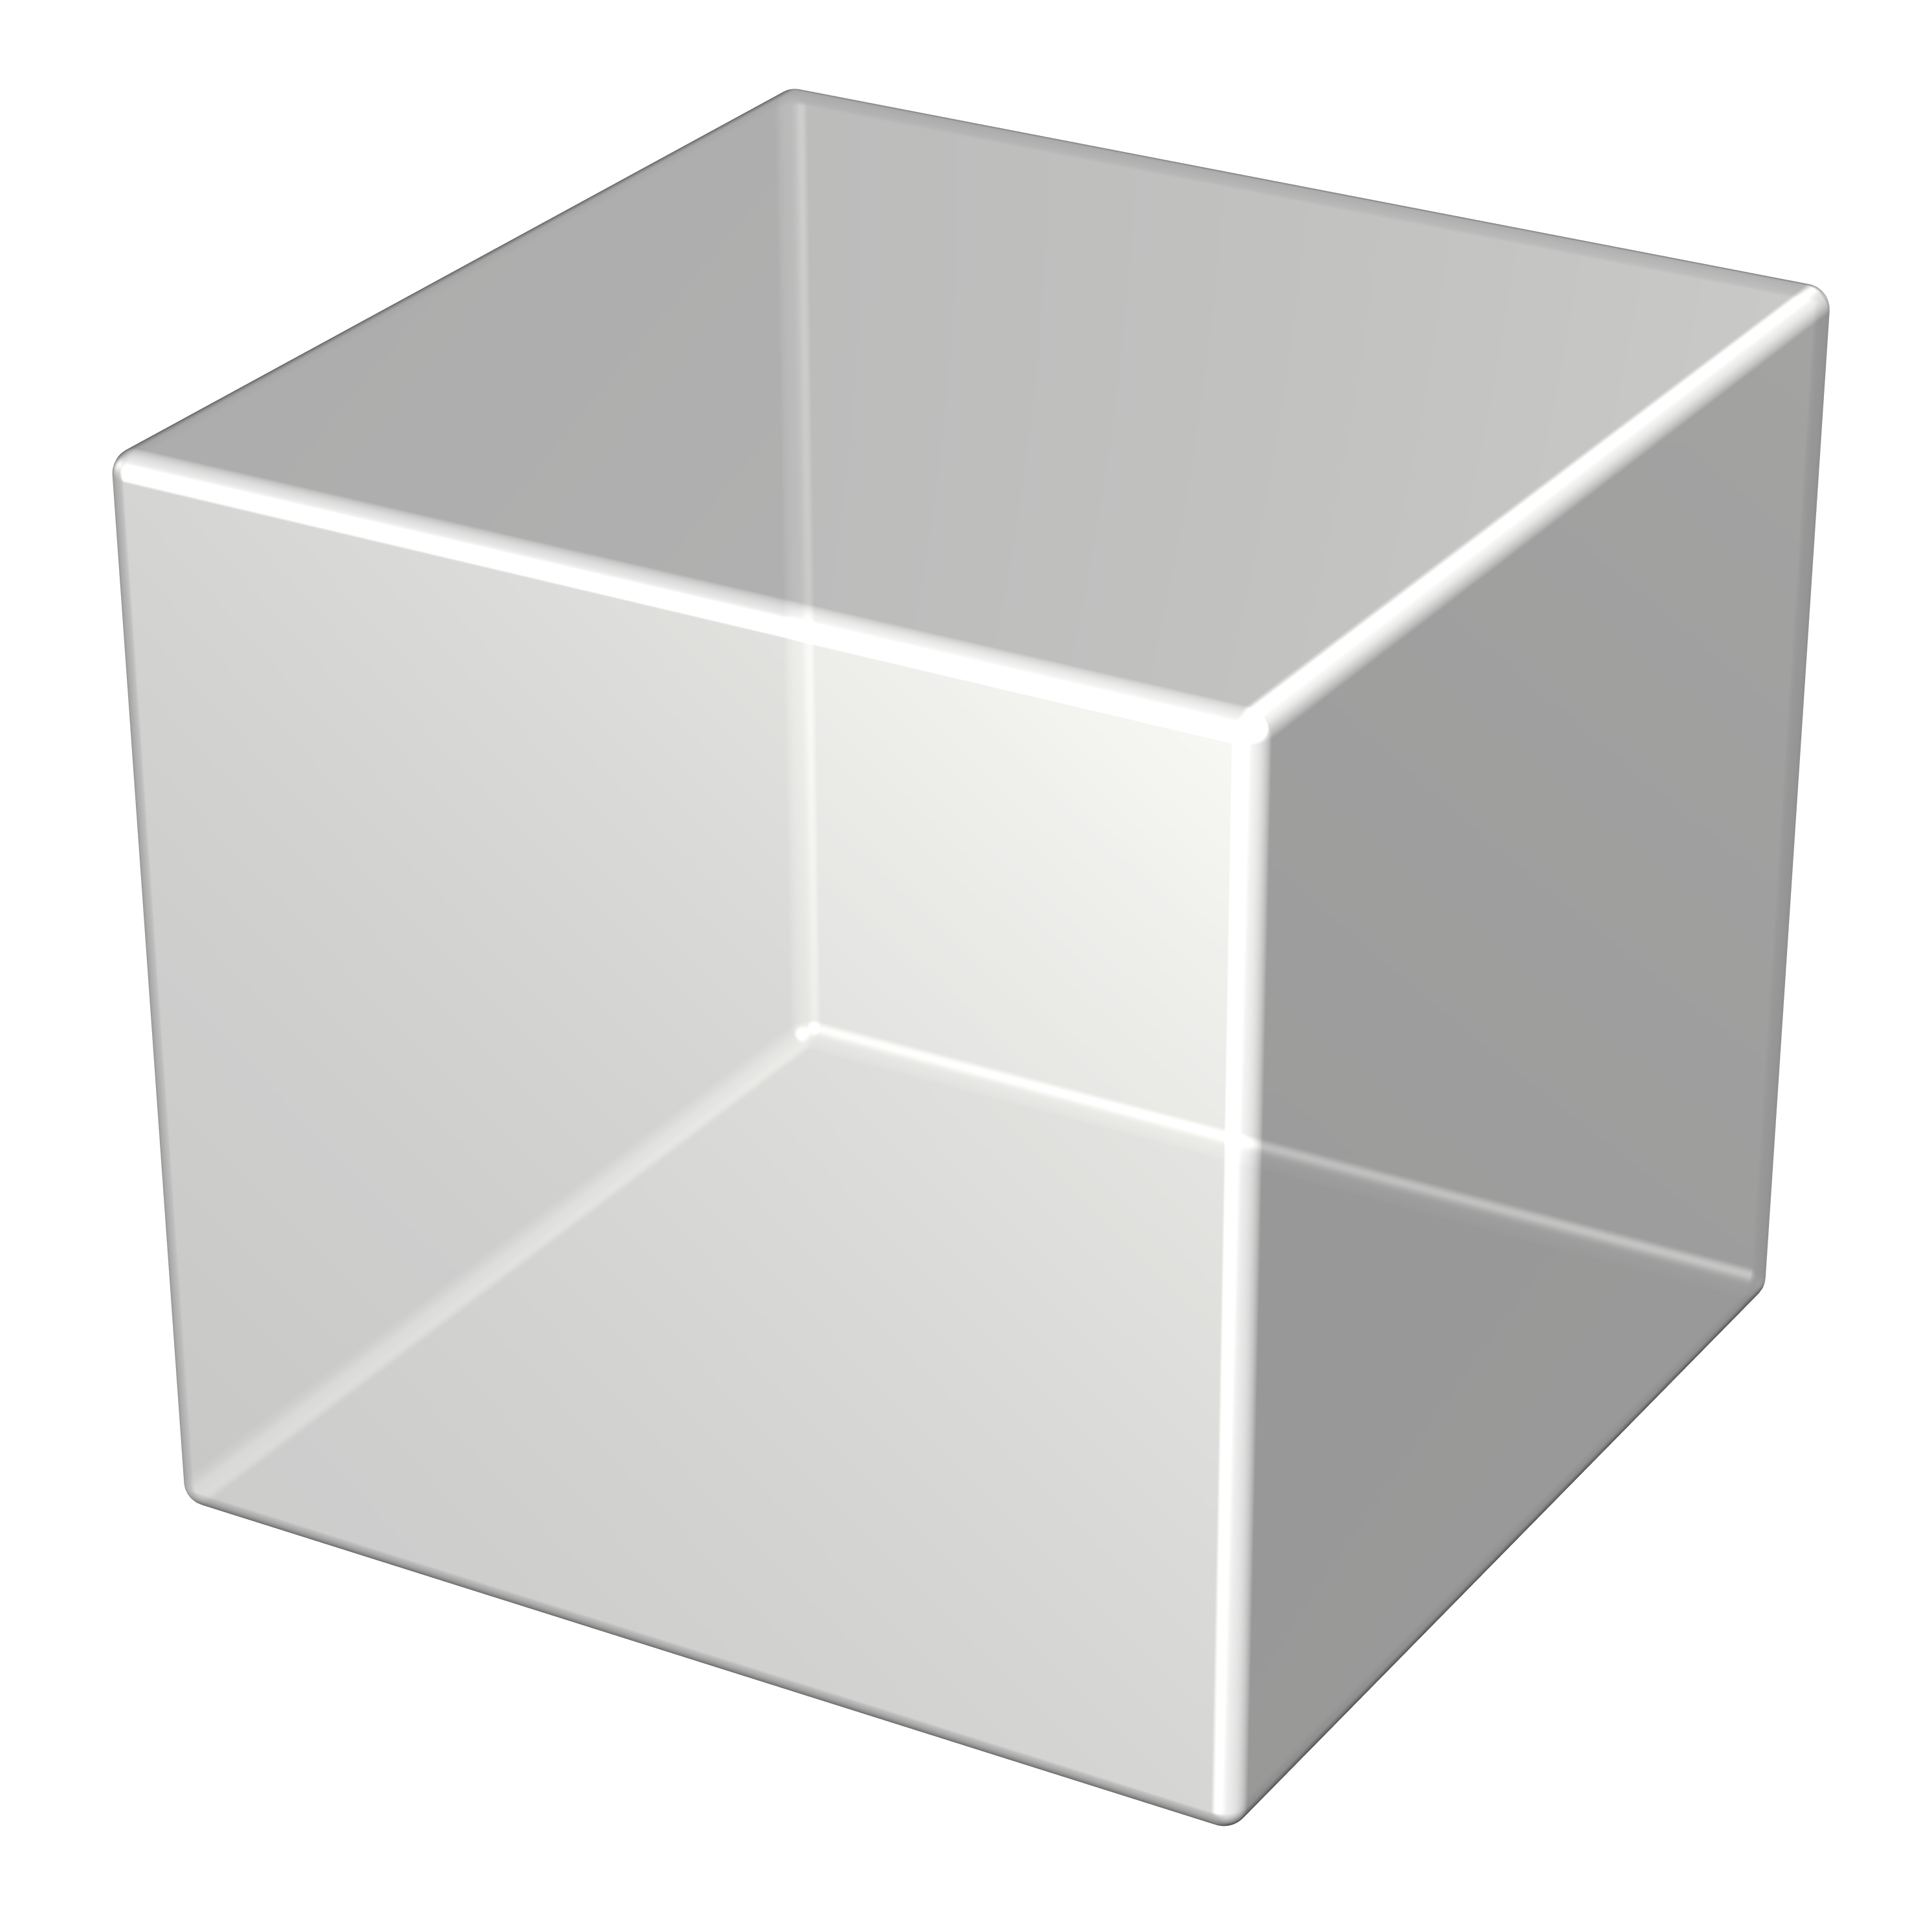 Clear Box 3d Renderings Trashedgraphics